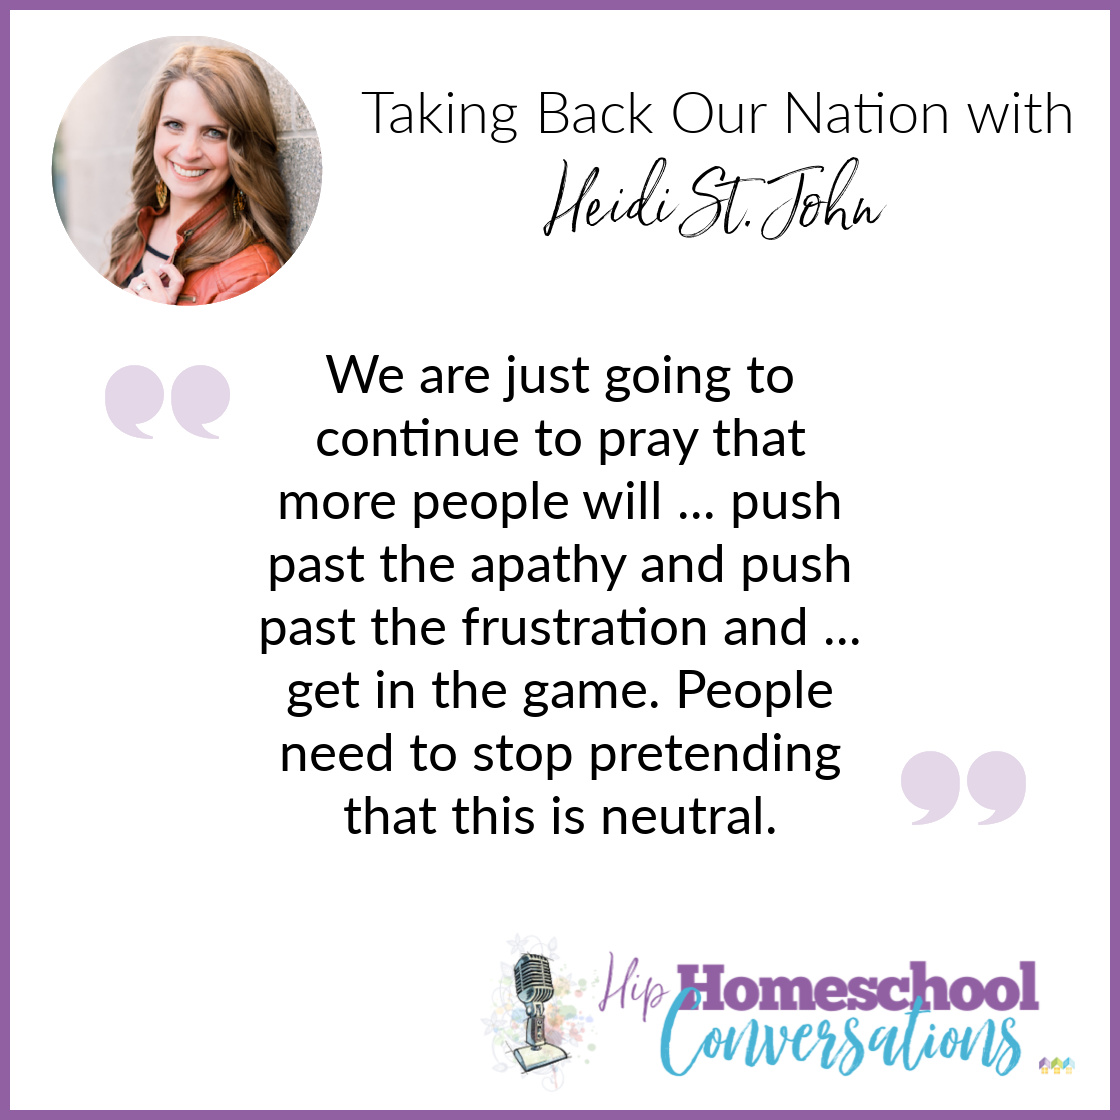 Our nation and our rights as homeschoolers are worth fighting for! Join us as we talk to Christian wife, homeschooling mom of seven, self-described Constitutionalist, author, and public speaker Heidi St. John.